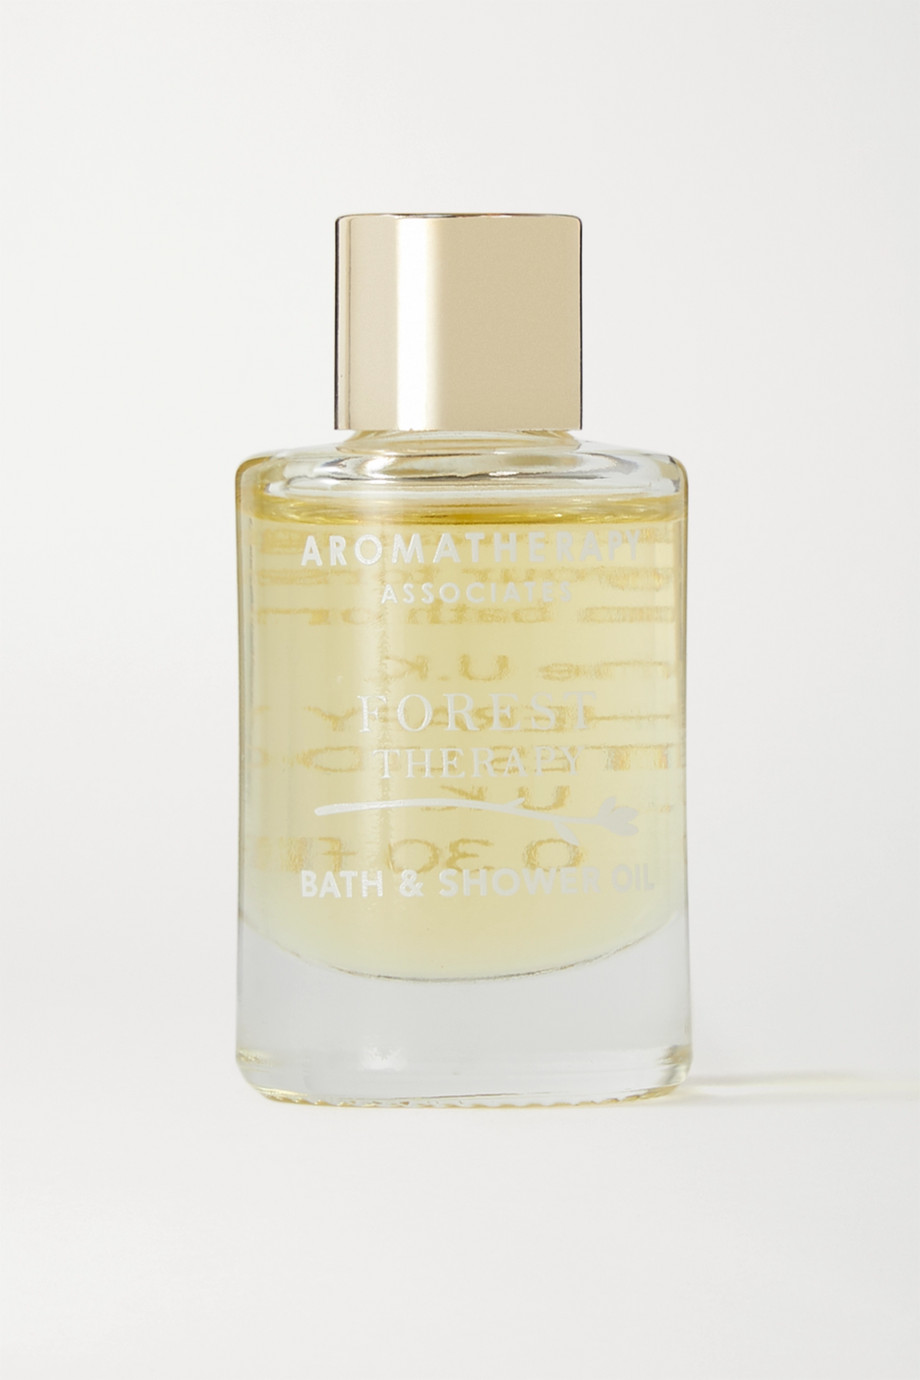 Aromatherapy Associates Mini Moment Forest Therapy Bath & Shower Oil Ornament, 9ml